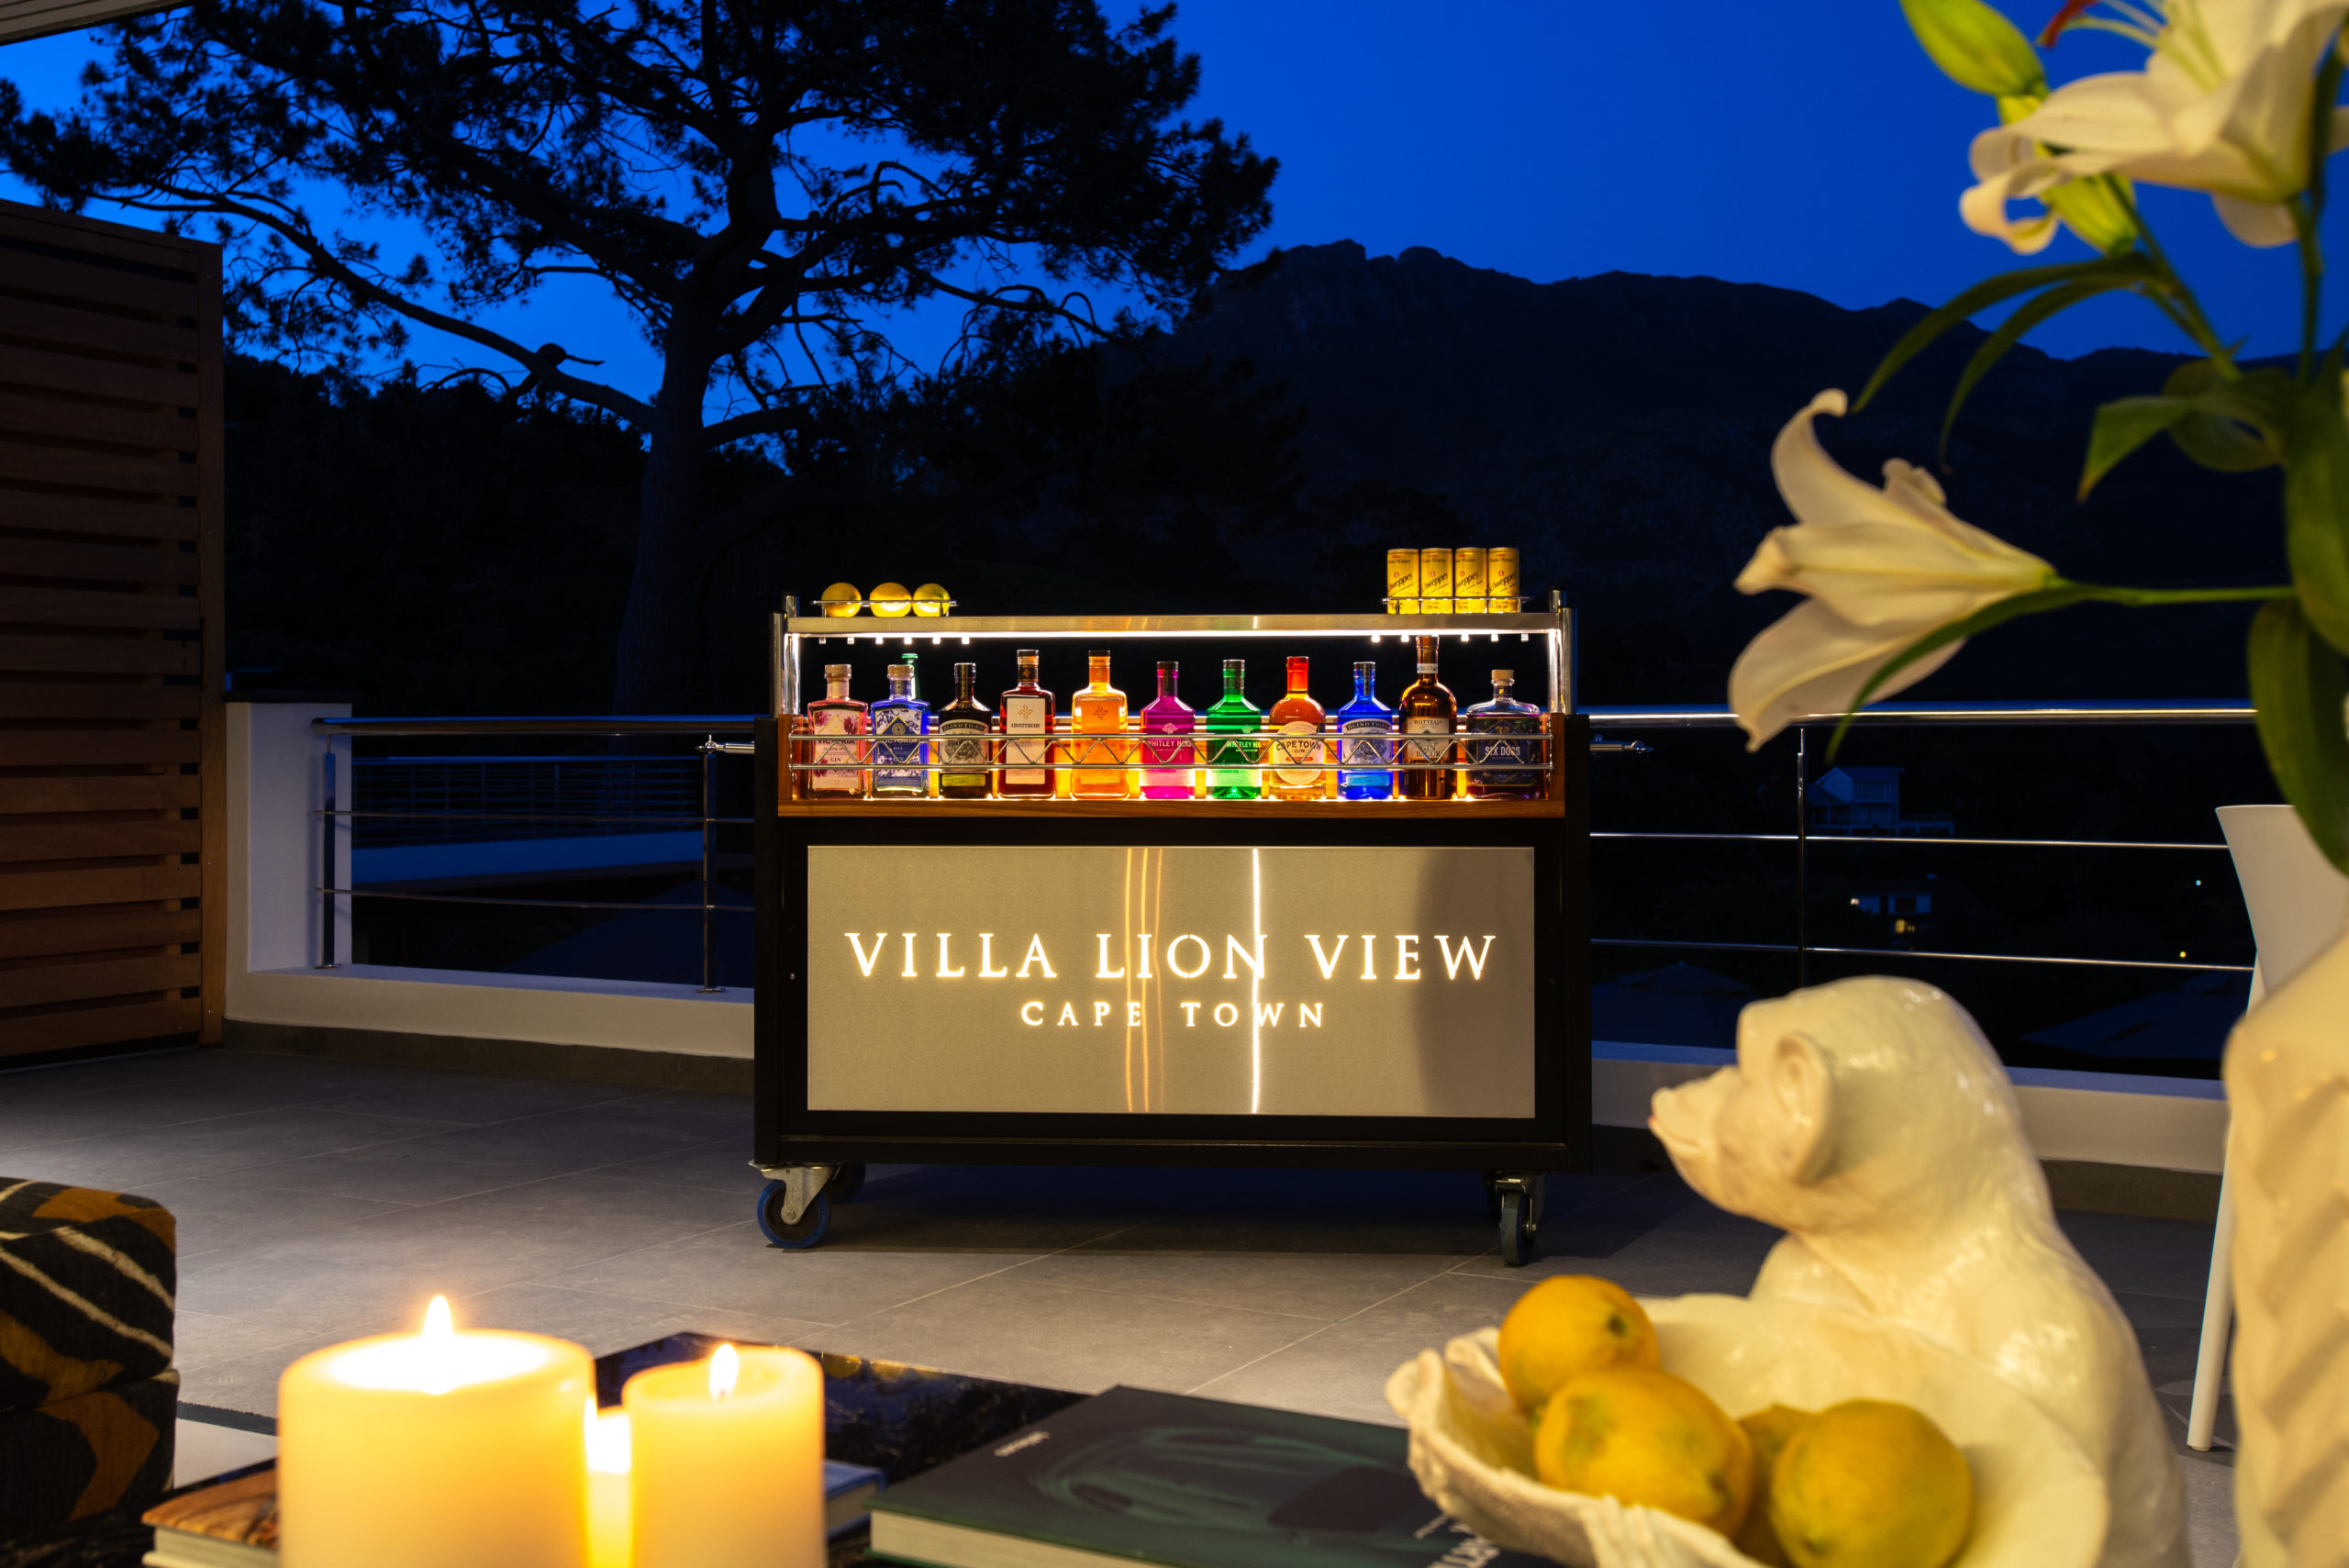 Bar with alcohol in the evening outside with candles at Villa Lion View